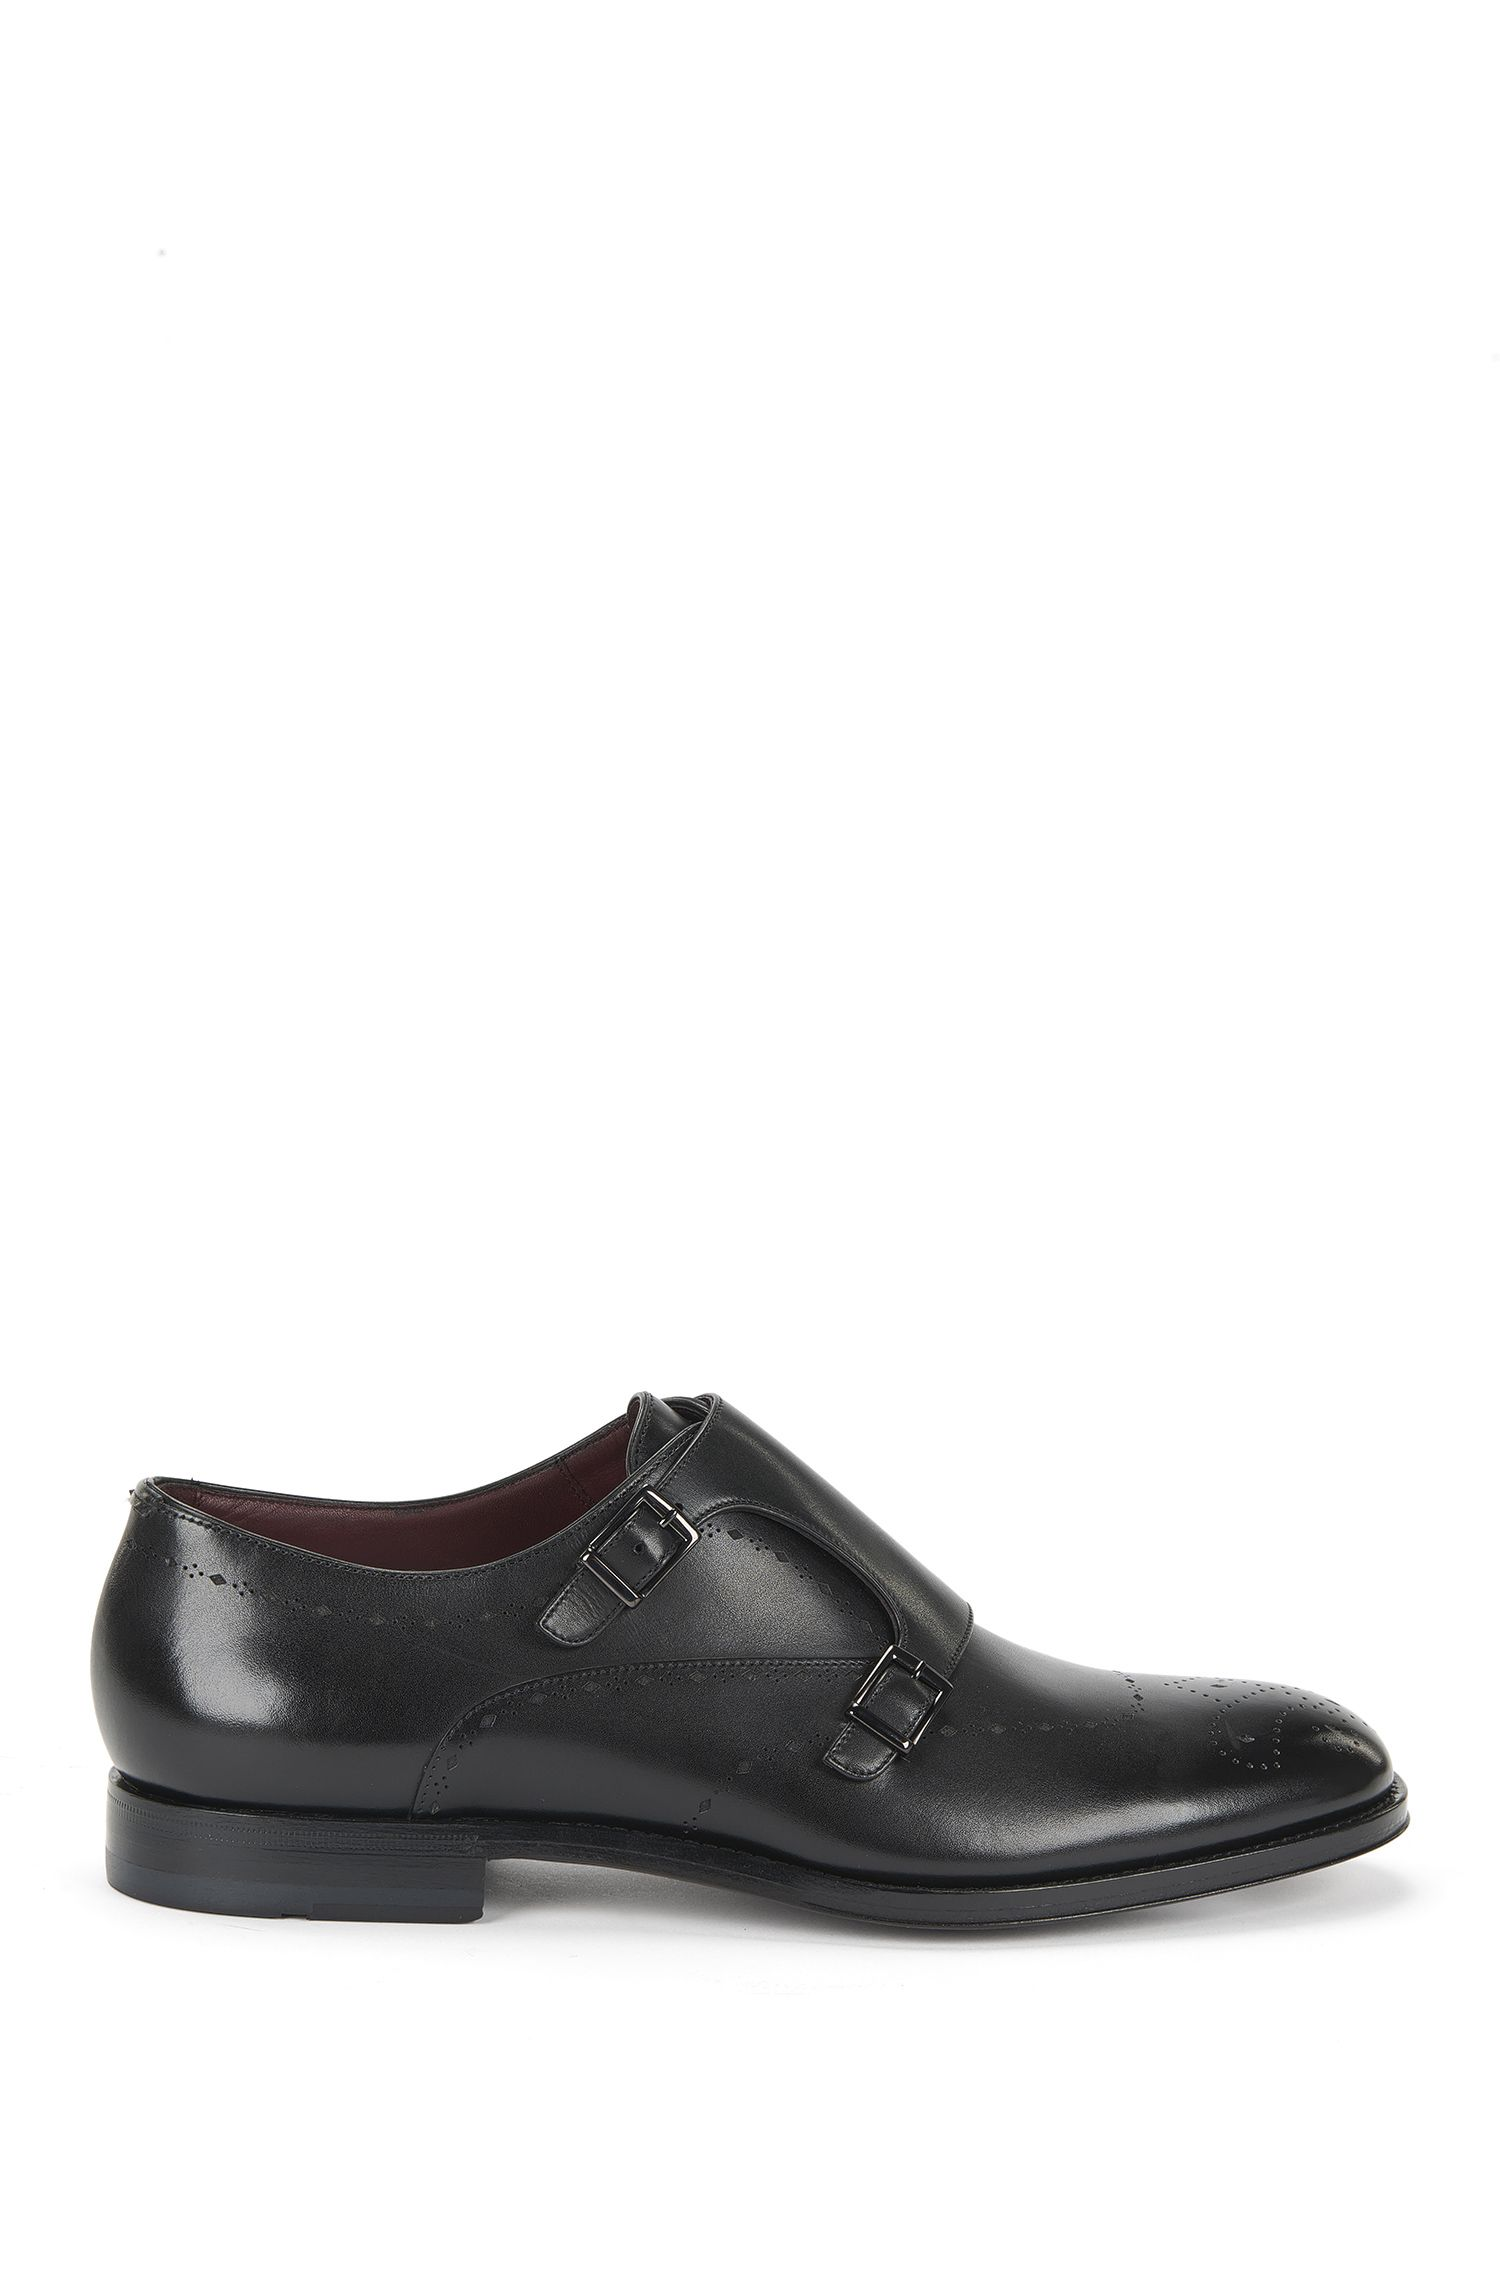 'T-Sartoria Monk lt' | Italian Calfskin Double Monk Strap Dress Shoes